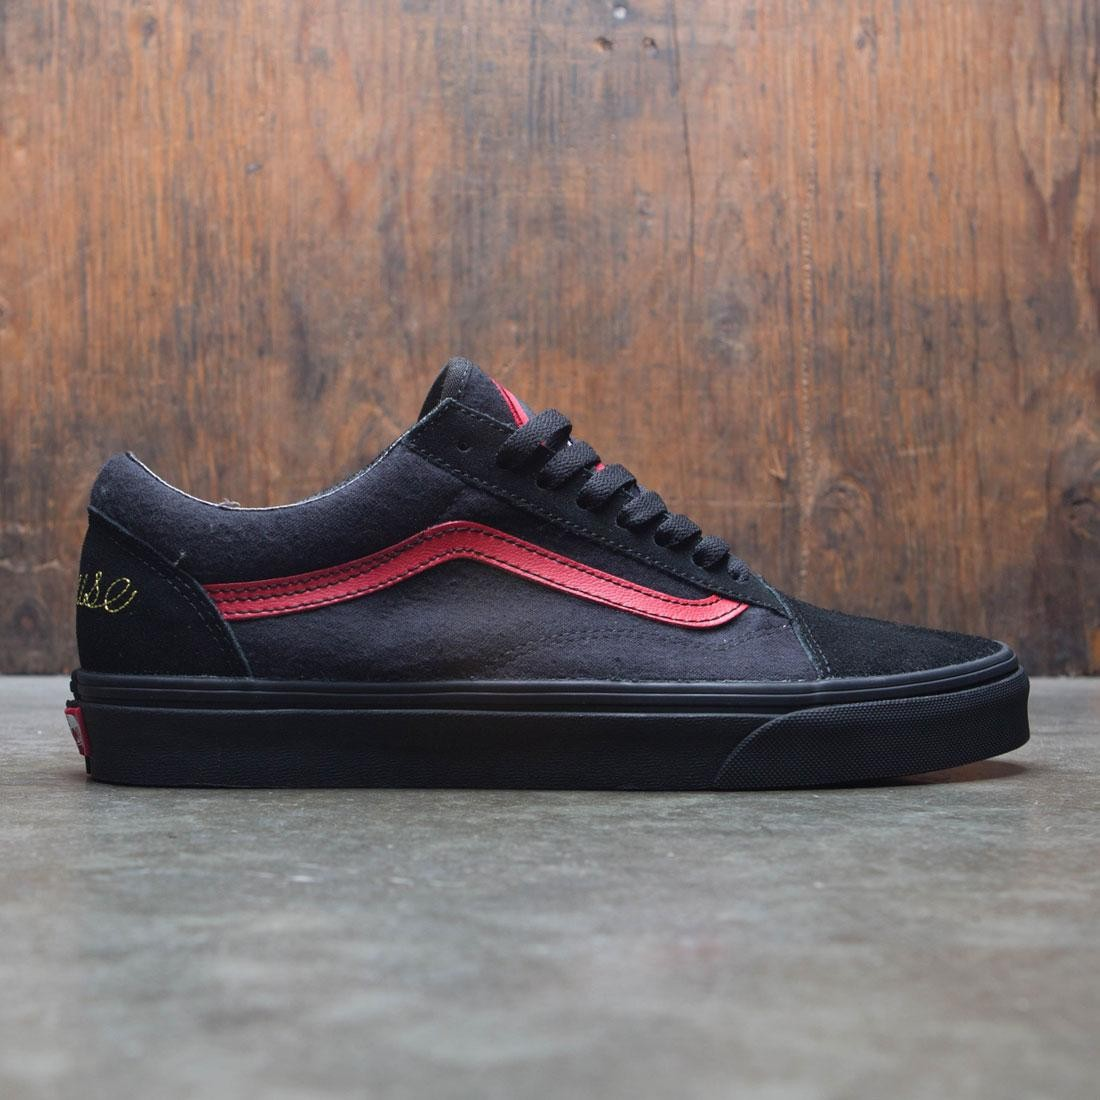 318cb72b5f Vans x Disney Men Old Skool - Mickey Mouse Club black